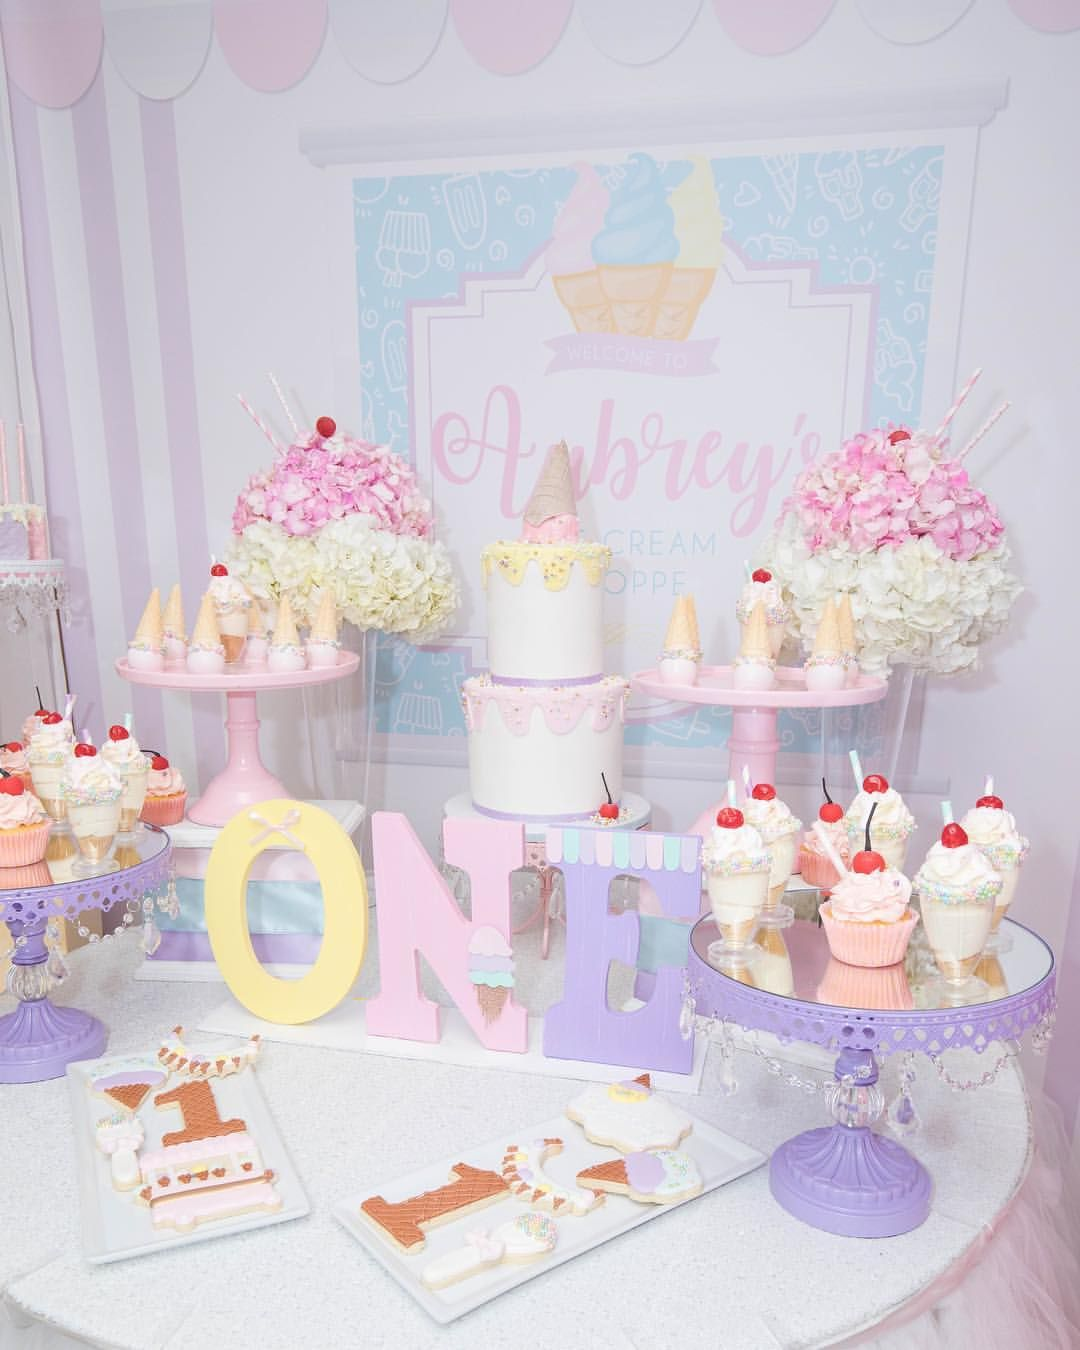 Ice Cream Theme 1st Birthday Photography By Shamemoriesphotography 1stbirthday I Ice Cream Birthday Party Ice Cream Birthday Party Theme Party Cake Table